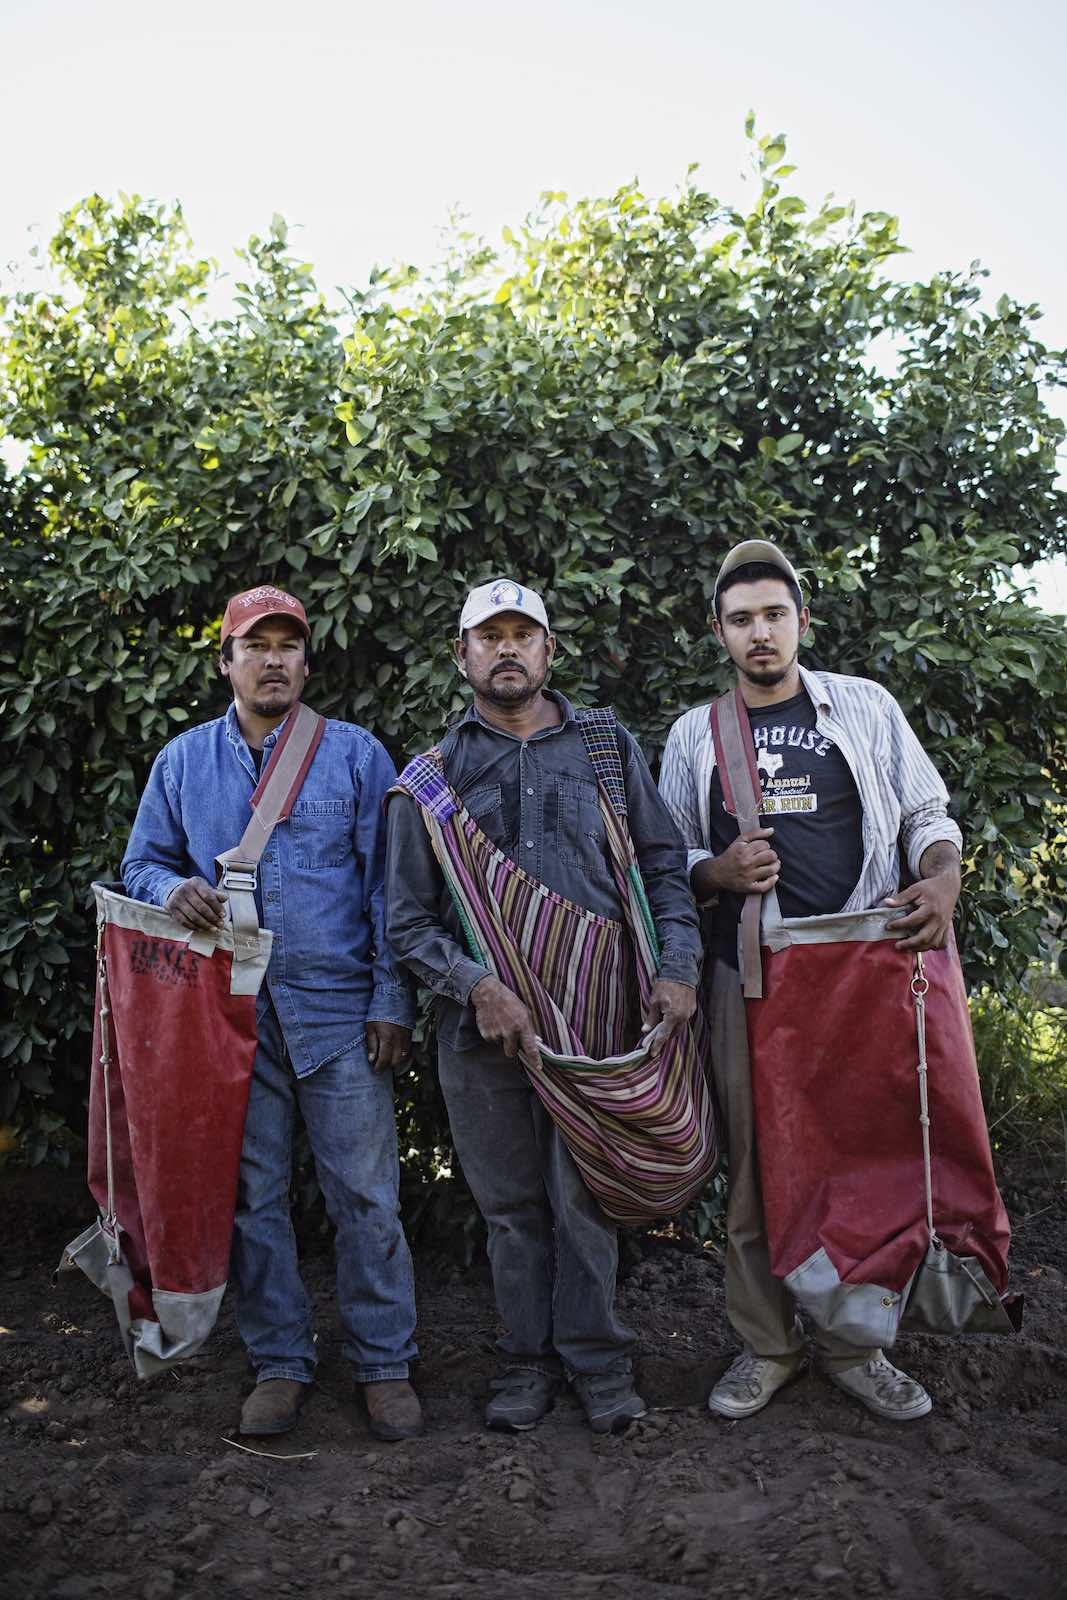 Jody Horton Photography - Grapefruit farmers standing among the trees, holding sacks for picking.